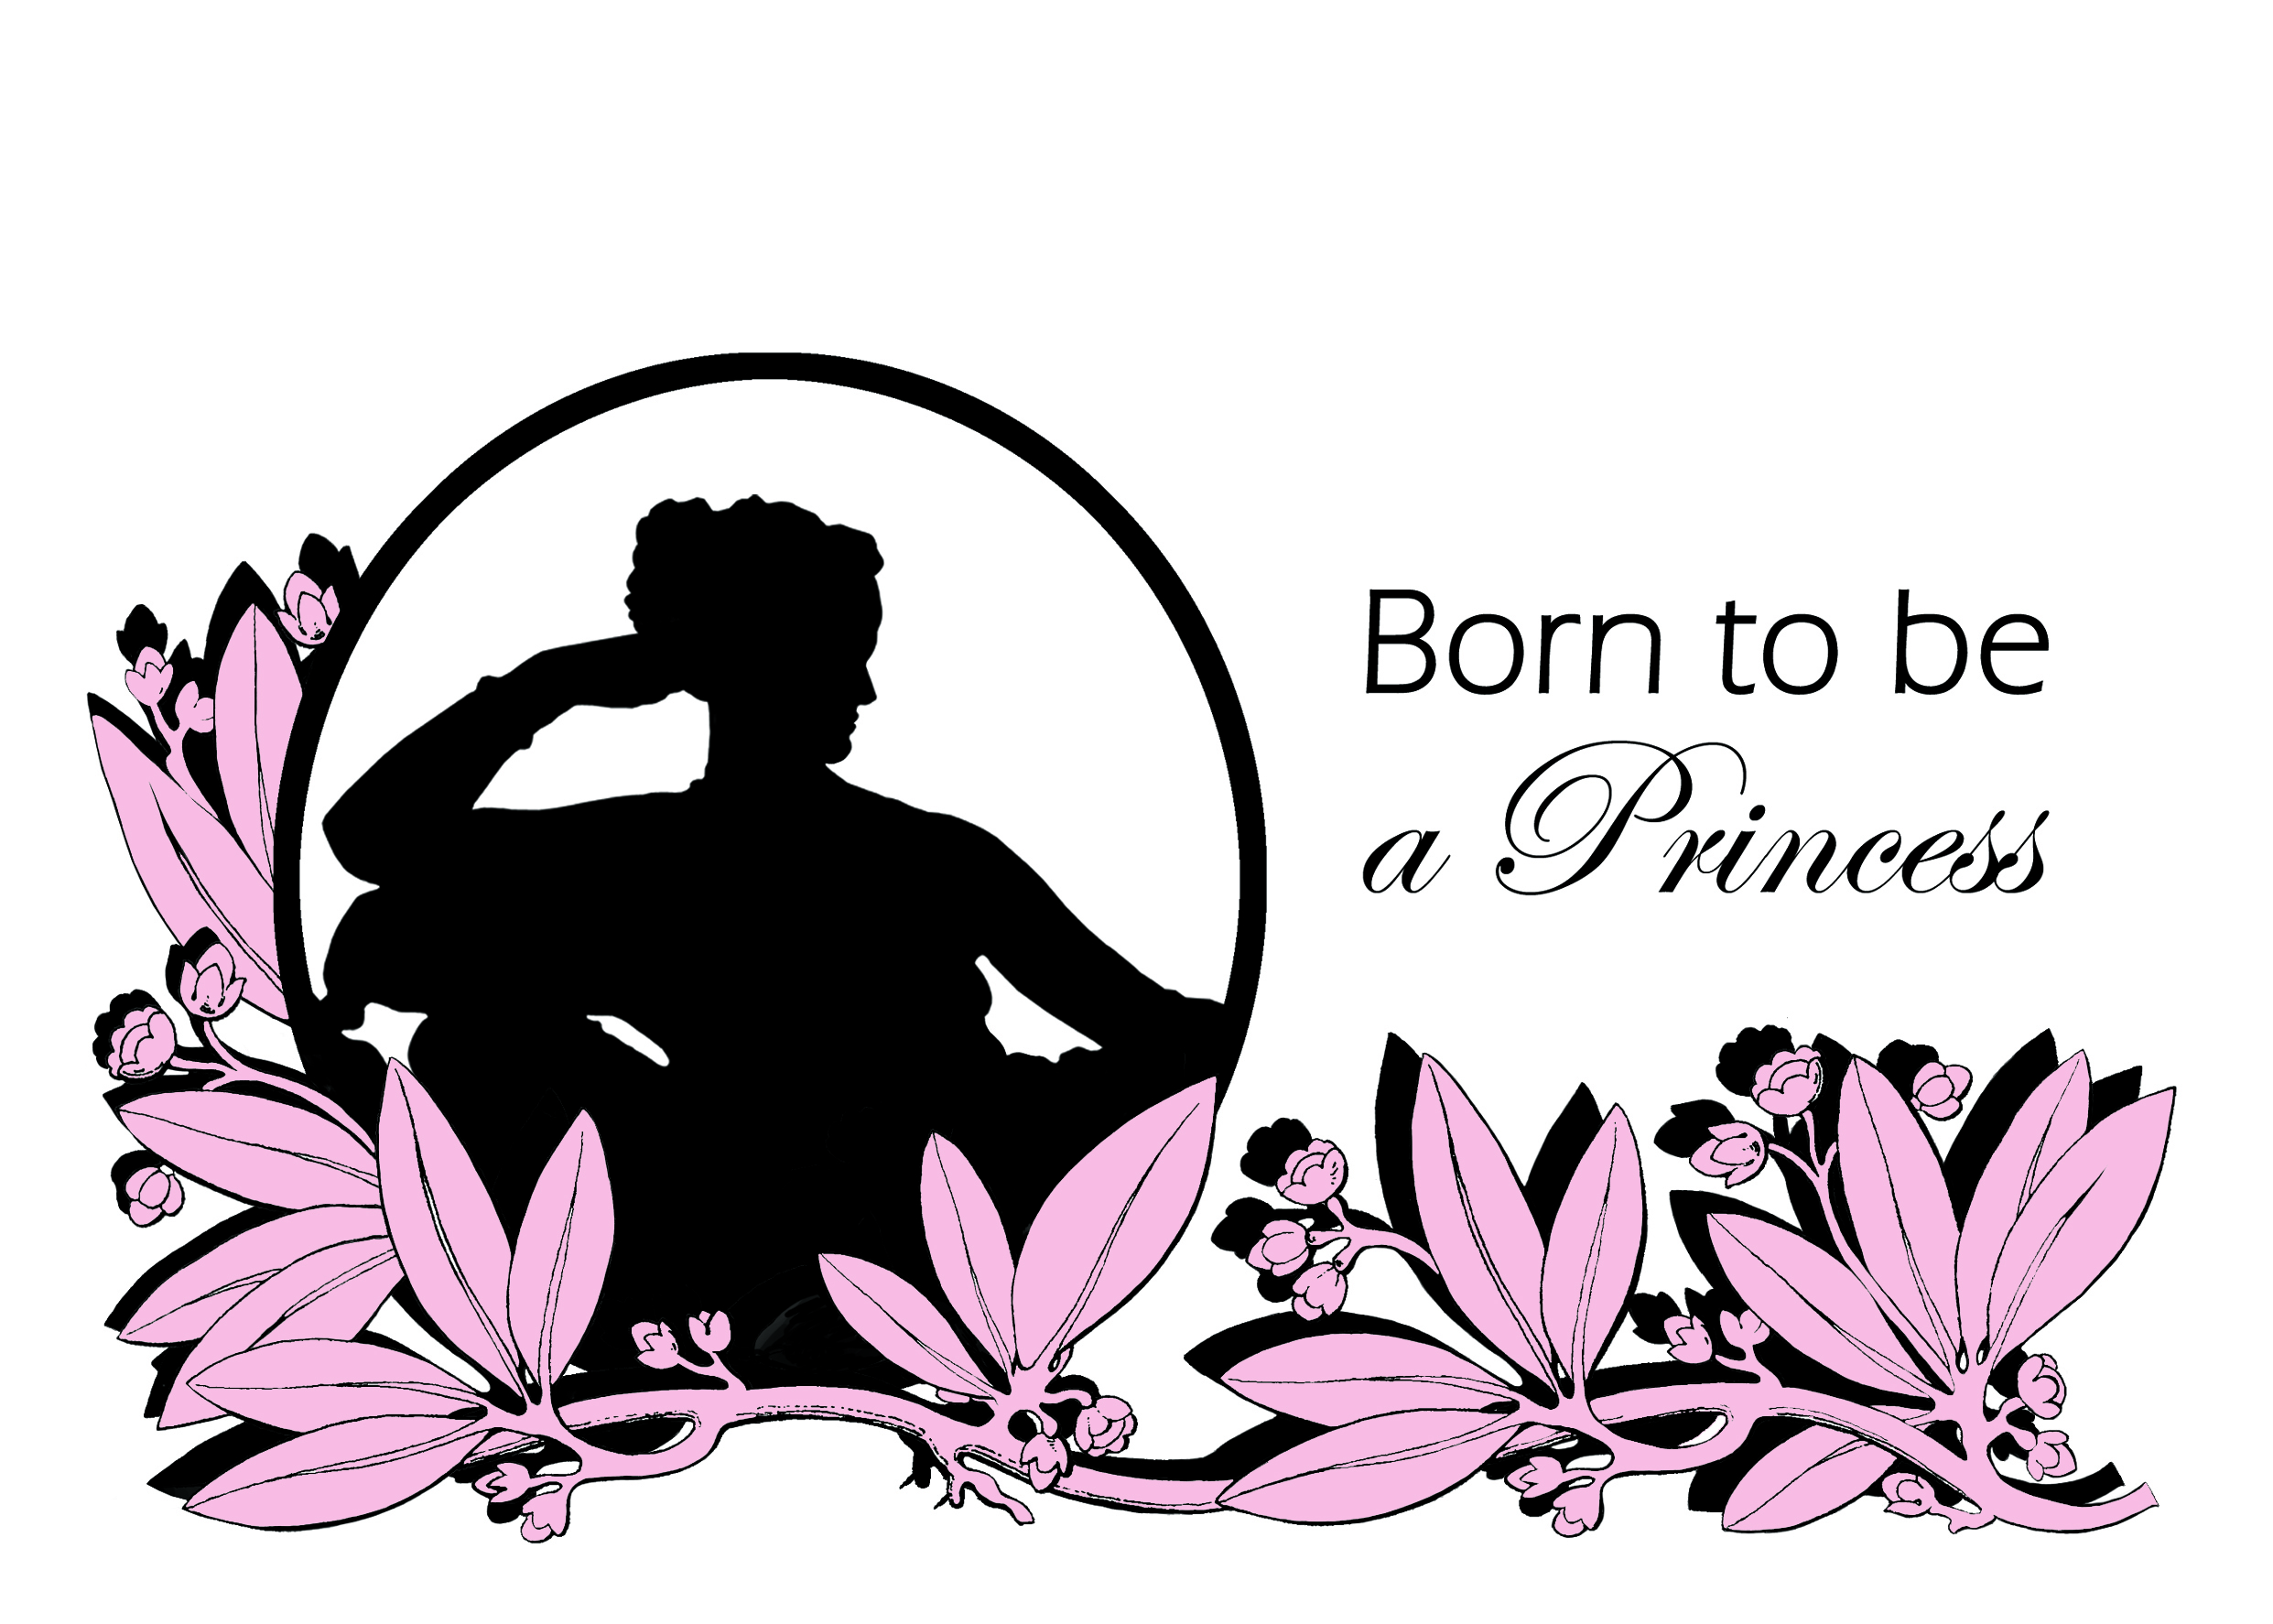 Born to be a Princess - Empire Ajaccio